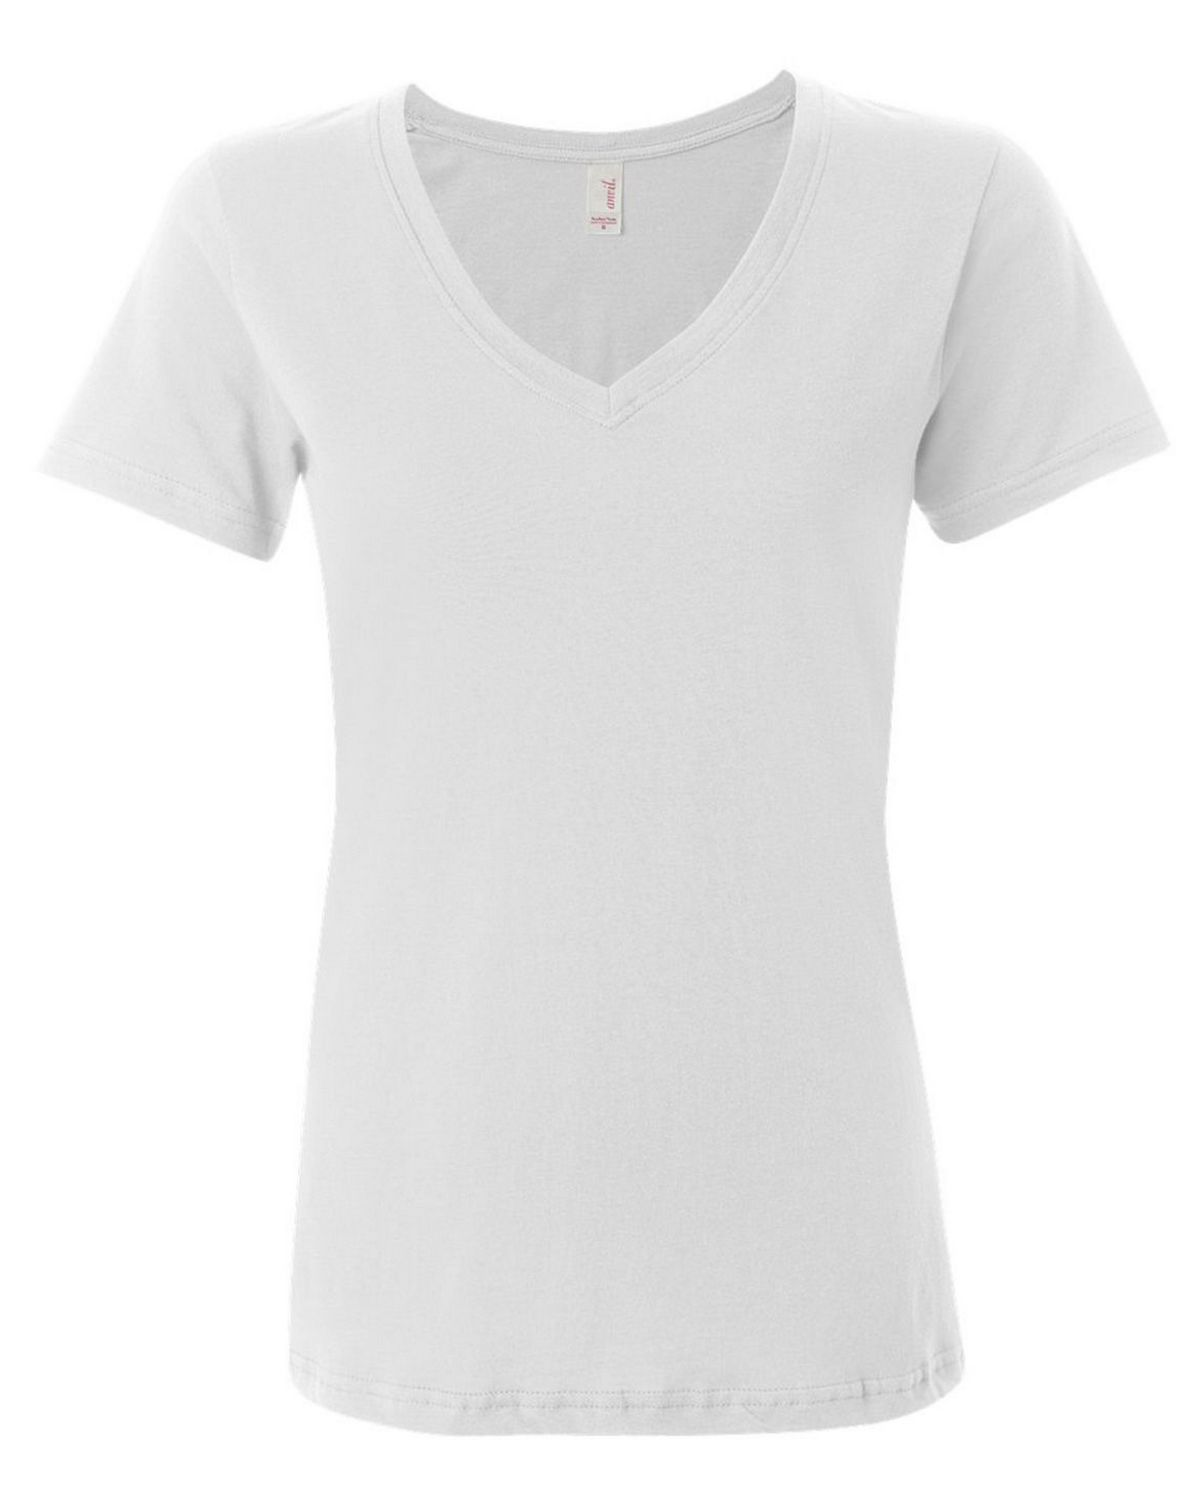 Anvil 392 Ladies Sheer V-Neck Tee - White - XL 392